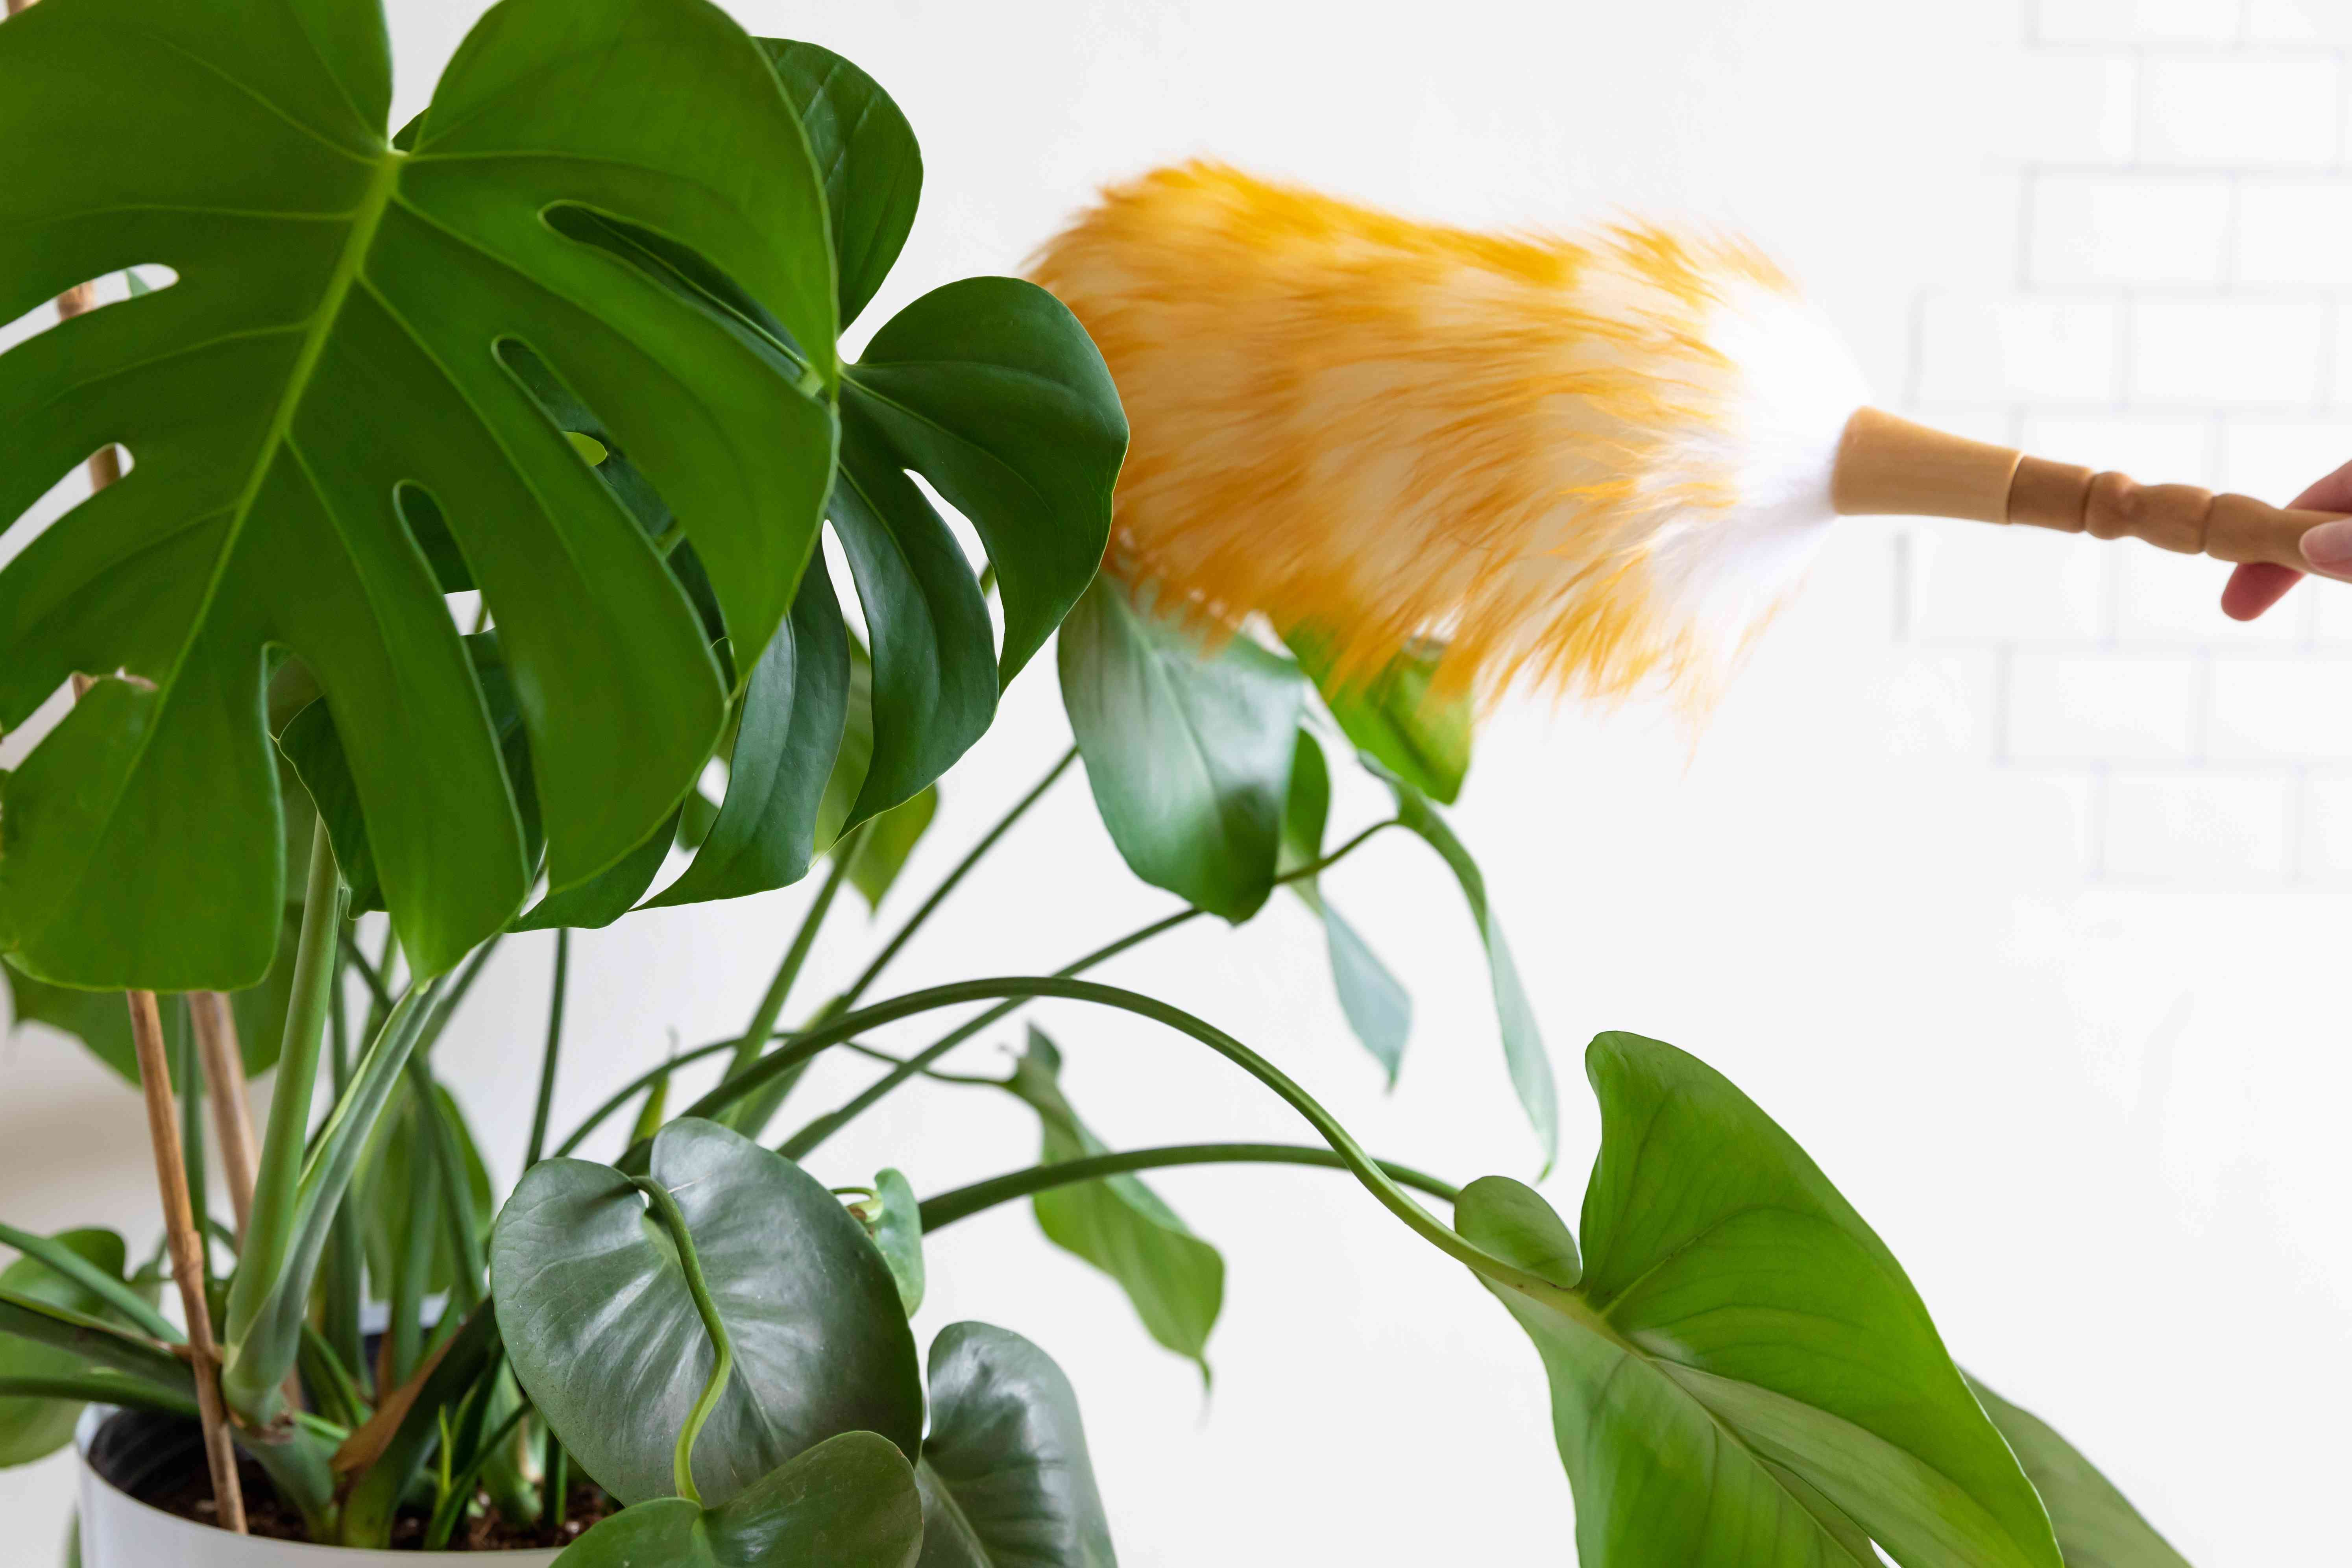 person using a brush to remove dust from a plant